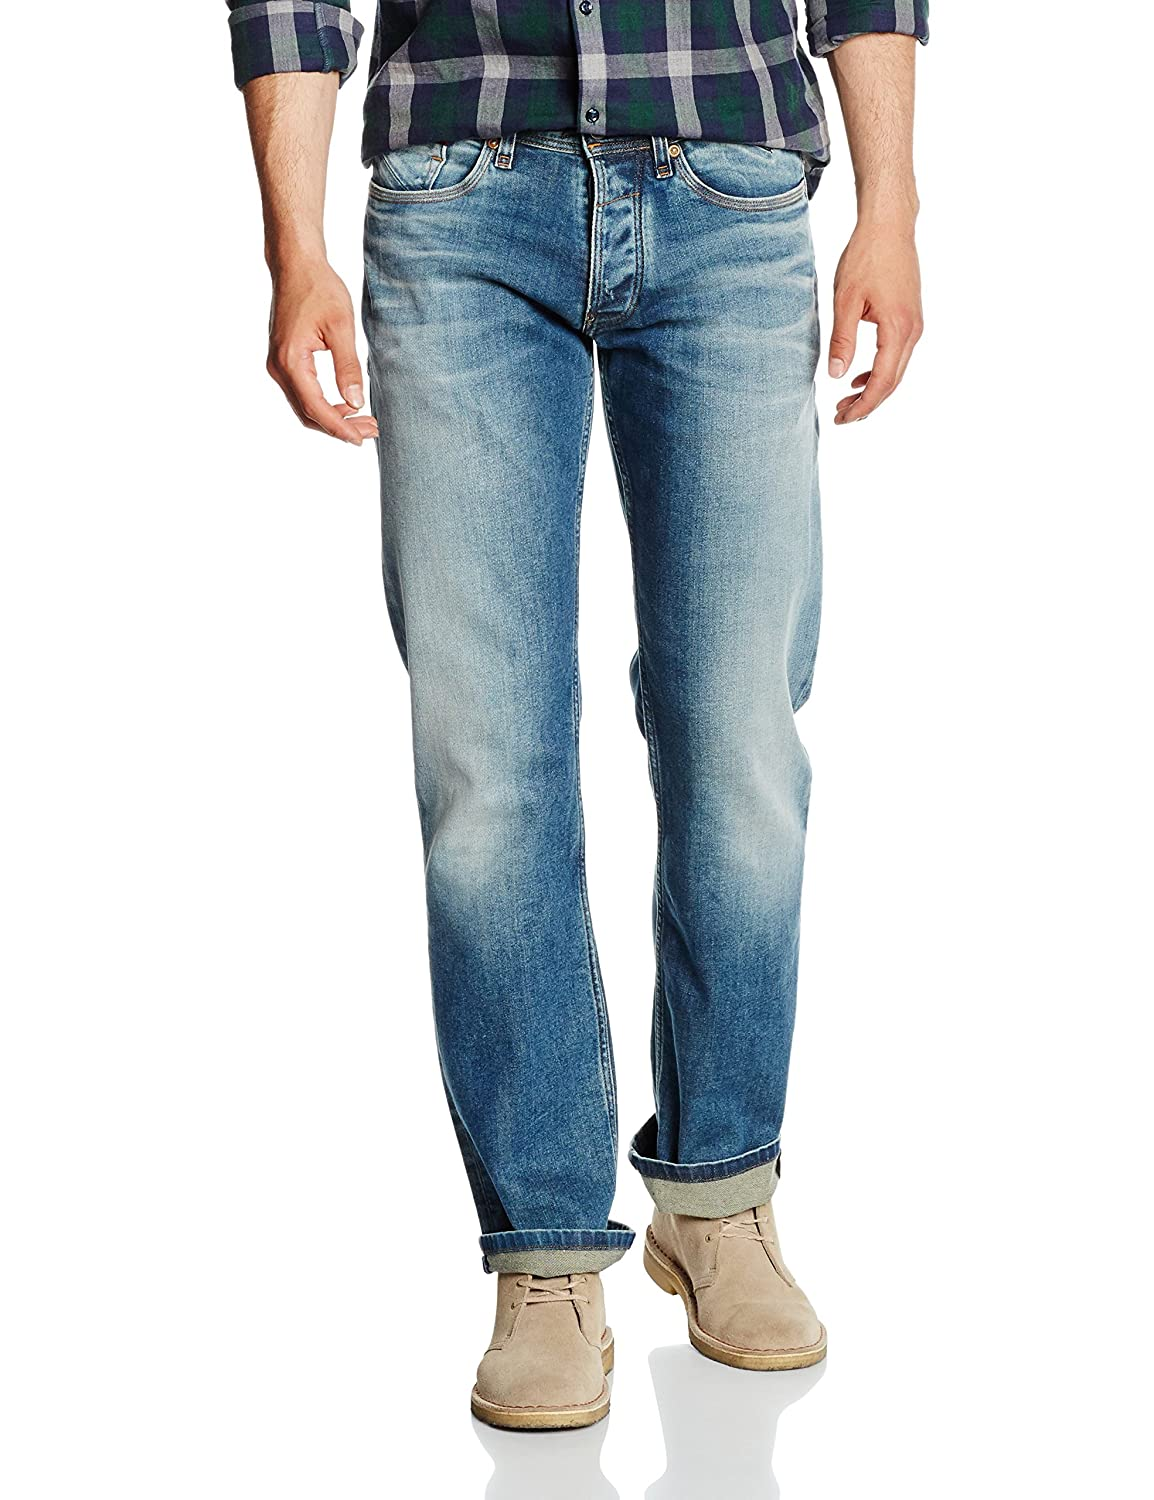 Hilfiger Denim Herren Jeanshose Original Straight Ryan Oics